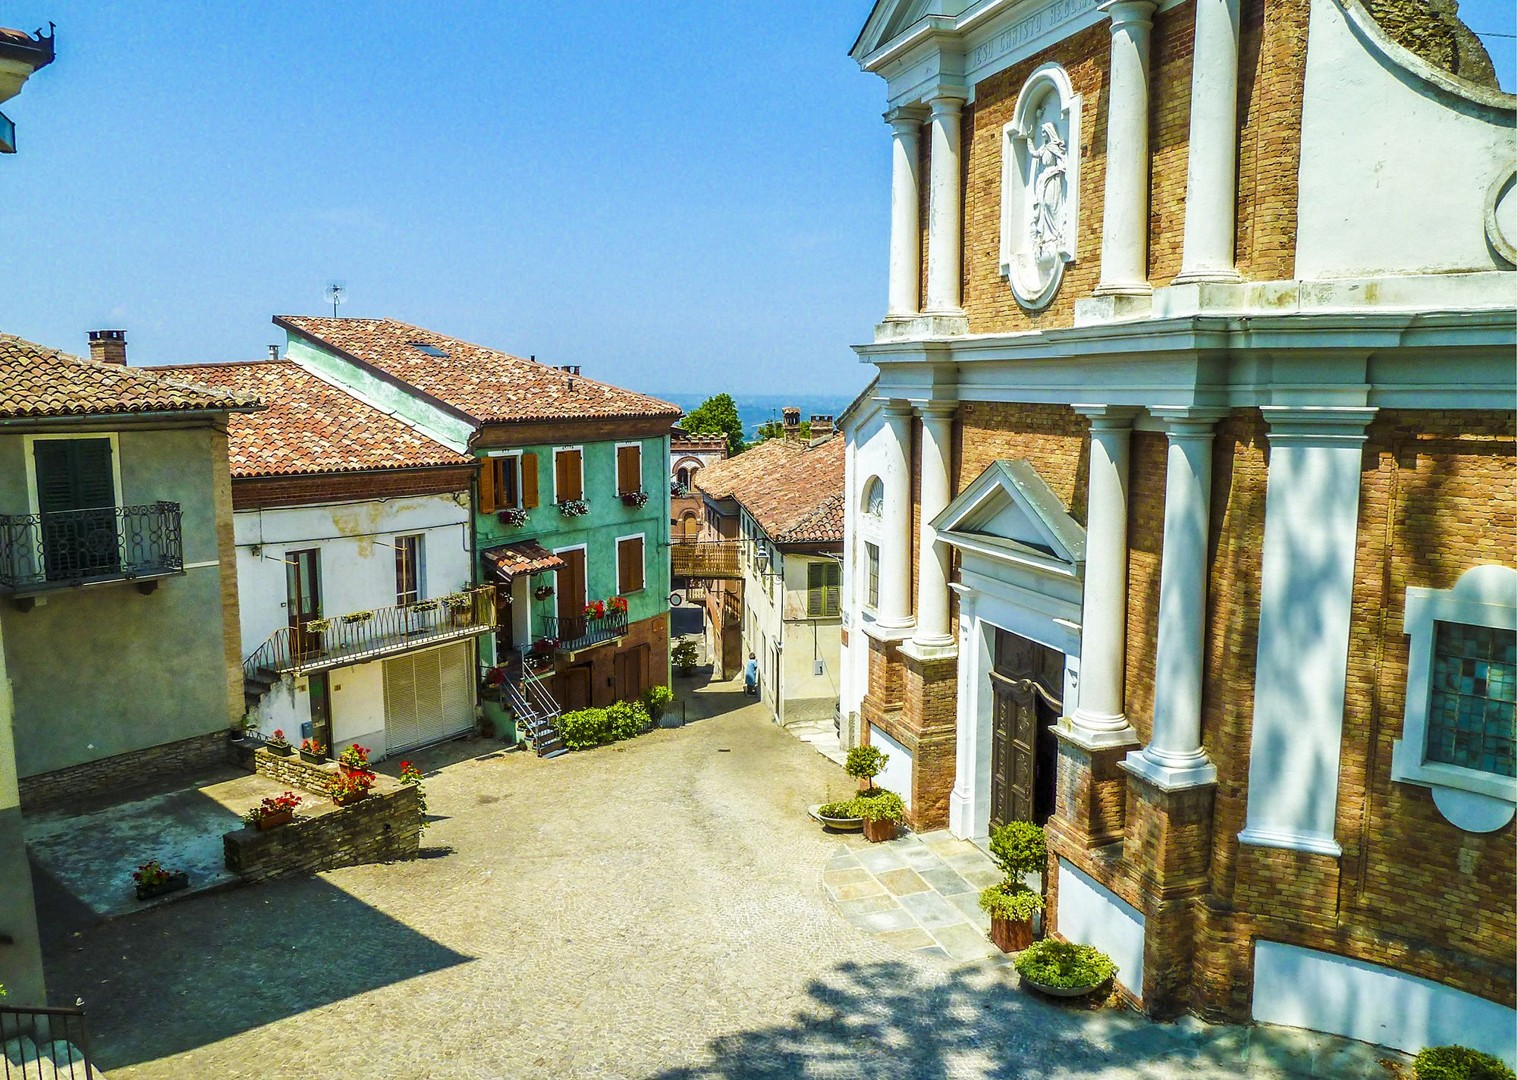 traditional-accommodation-agriturismo-saddle-skedaddle-cycling-holiday-tour-italy.jpg - Italy - Piemonte - Vineyards and Views - Self-Guided Leisure Cycling Holiday - Leisure Cycling